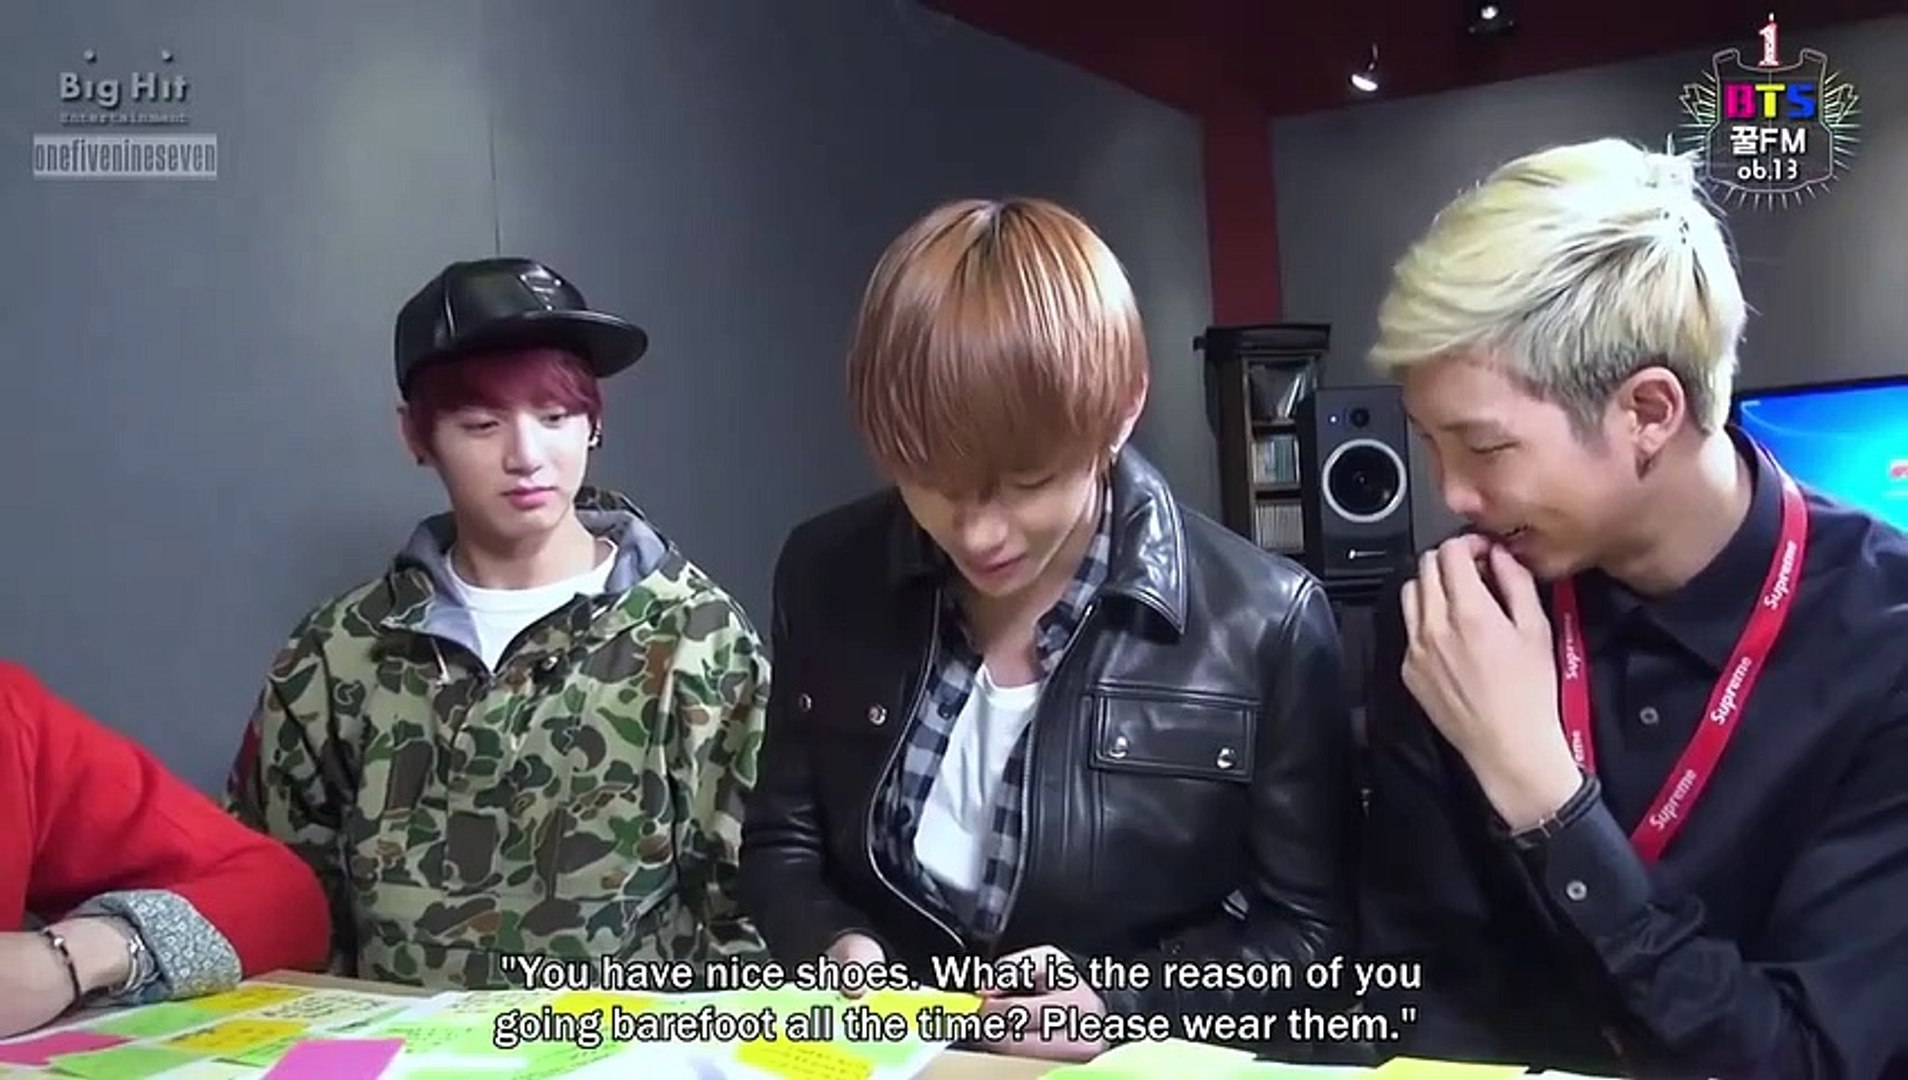 [Engsub] BTS COOL FM 06.13 - BTS 1st Birthday 'BTS Festa 2014' PART 1